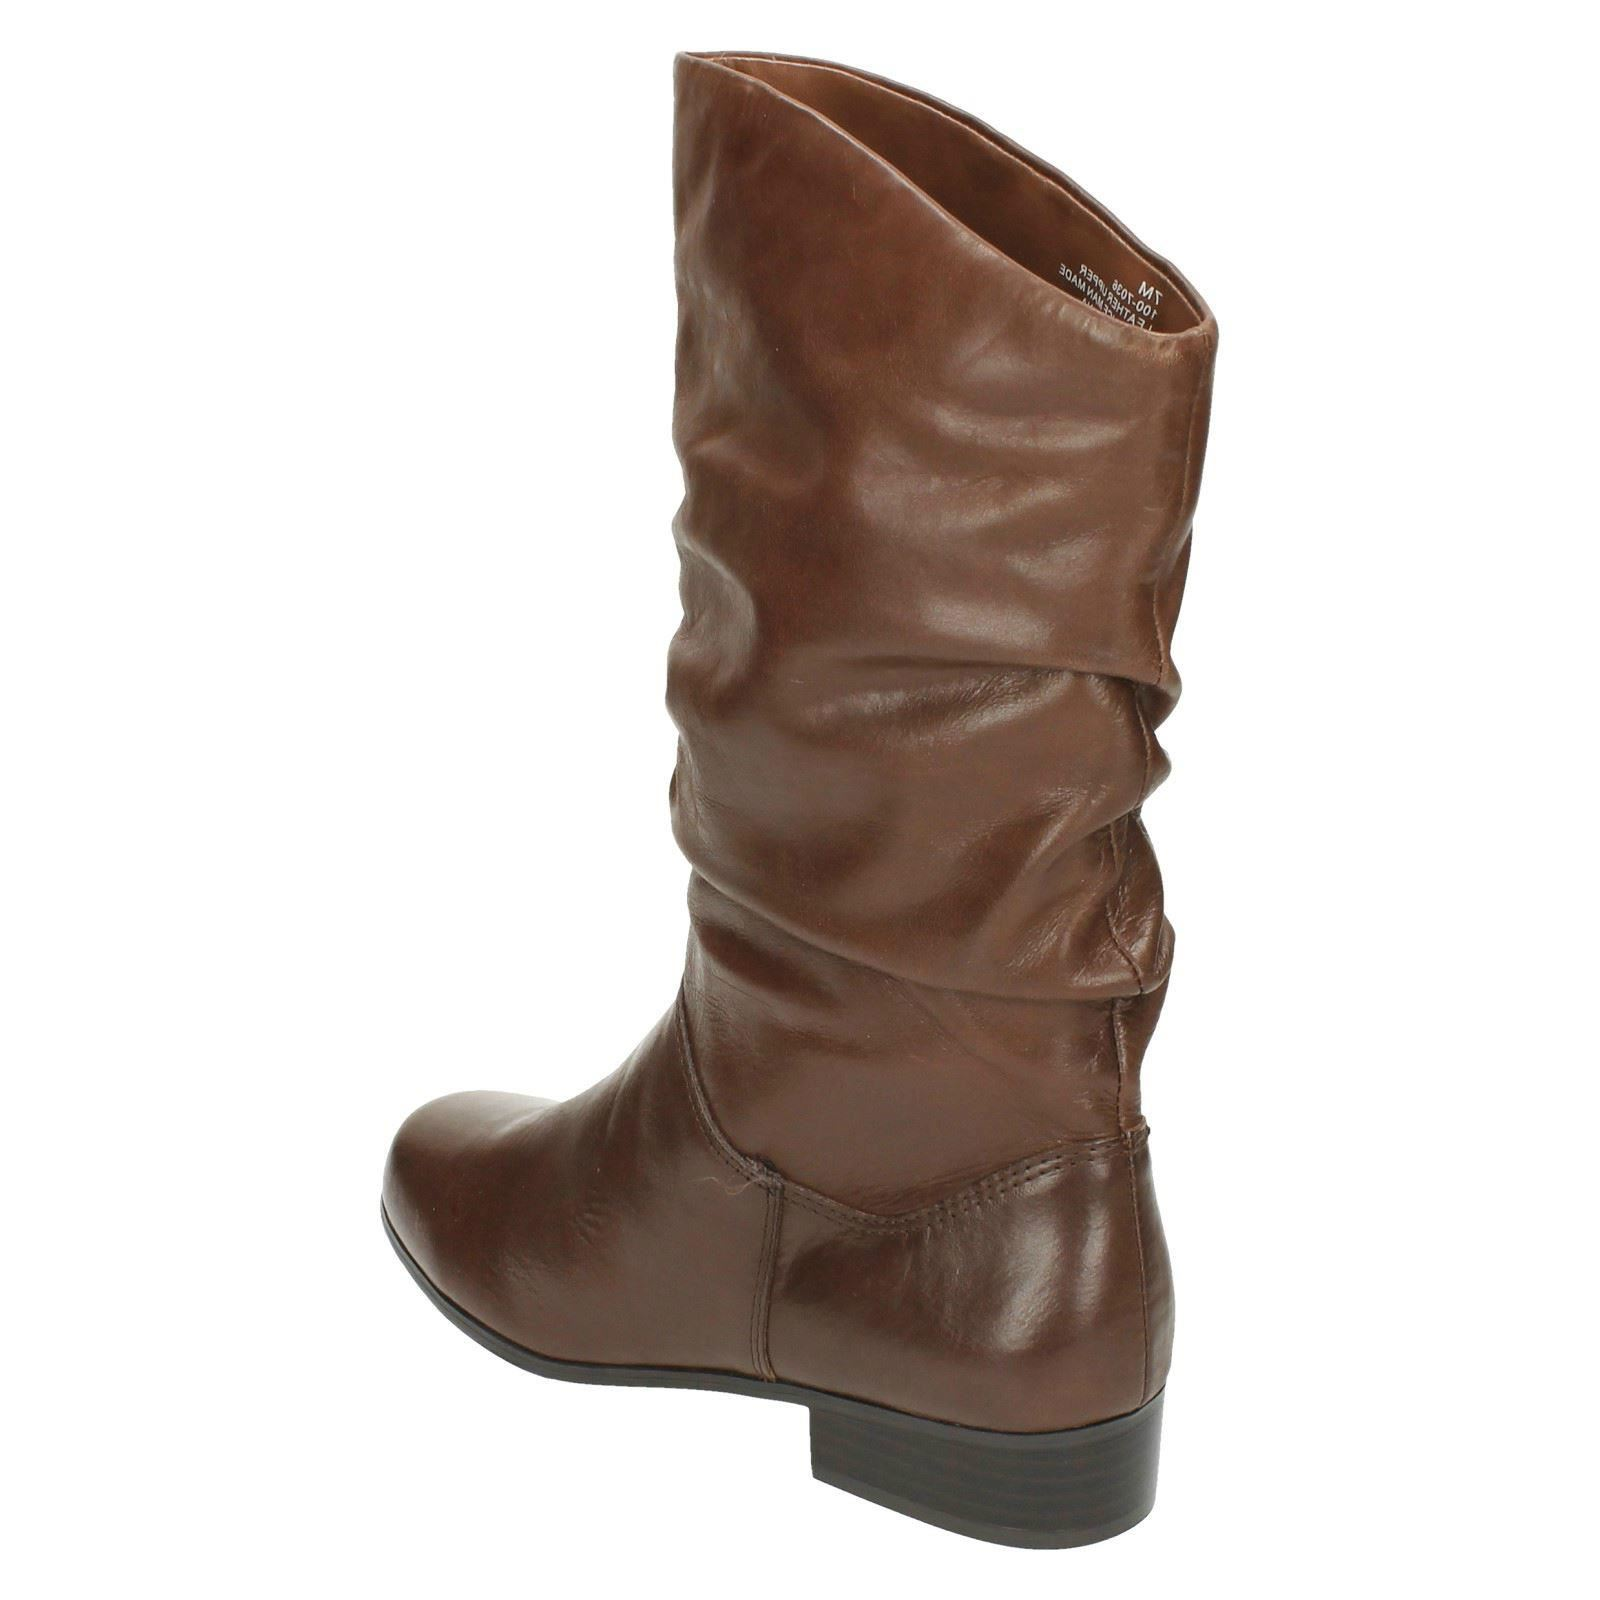 leather collection calf length boots f50694 ebay